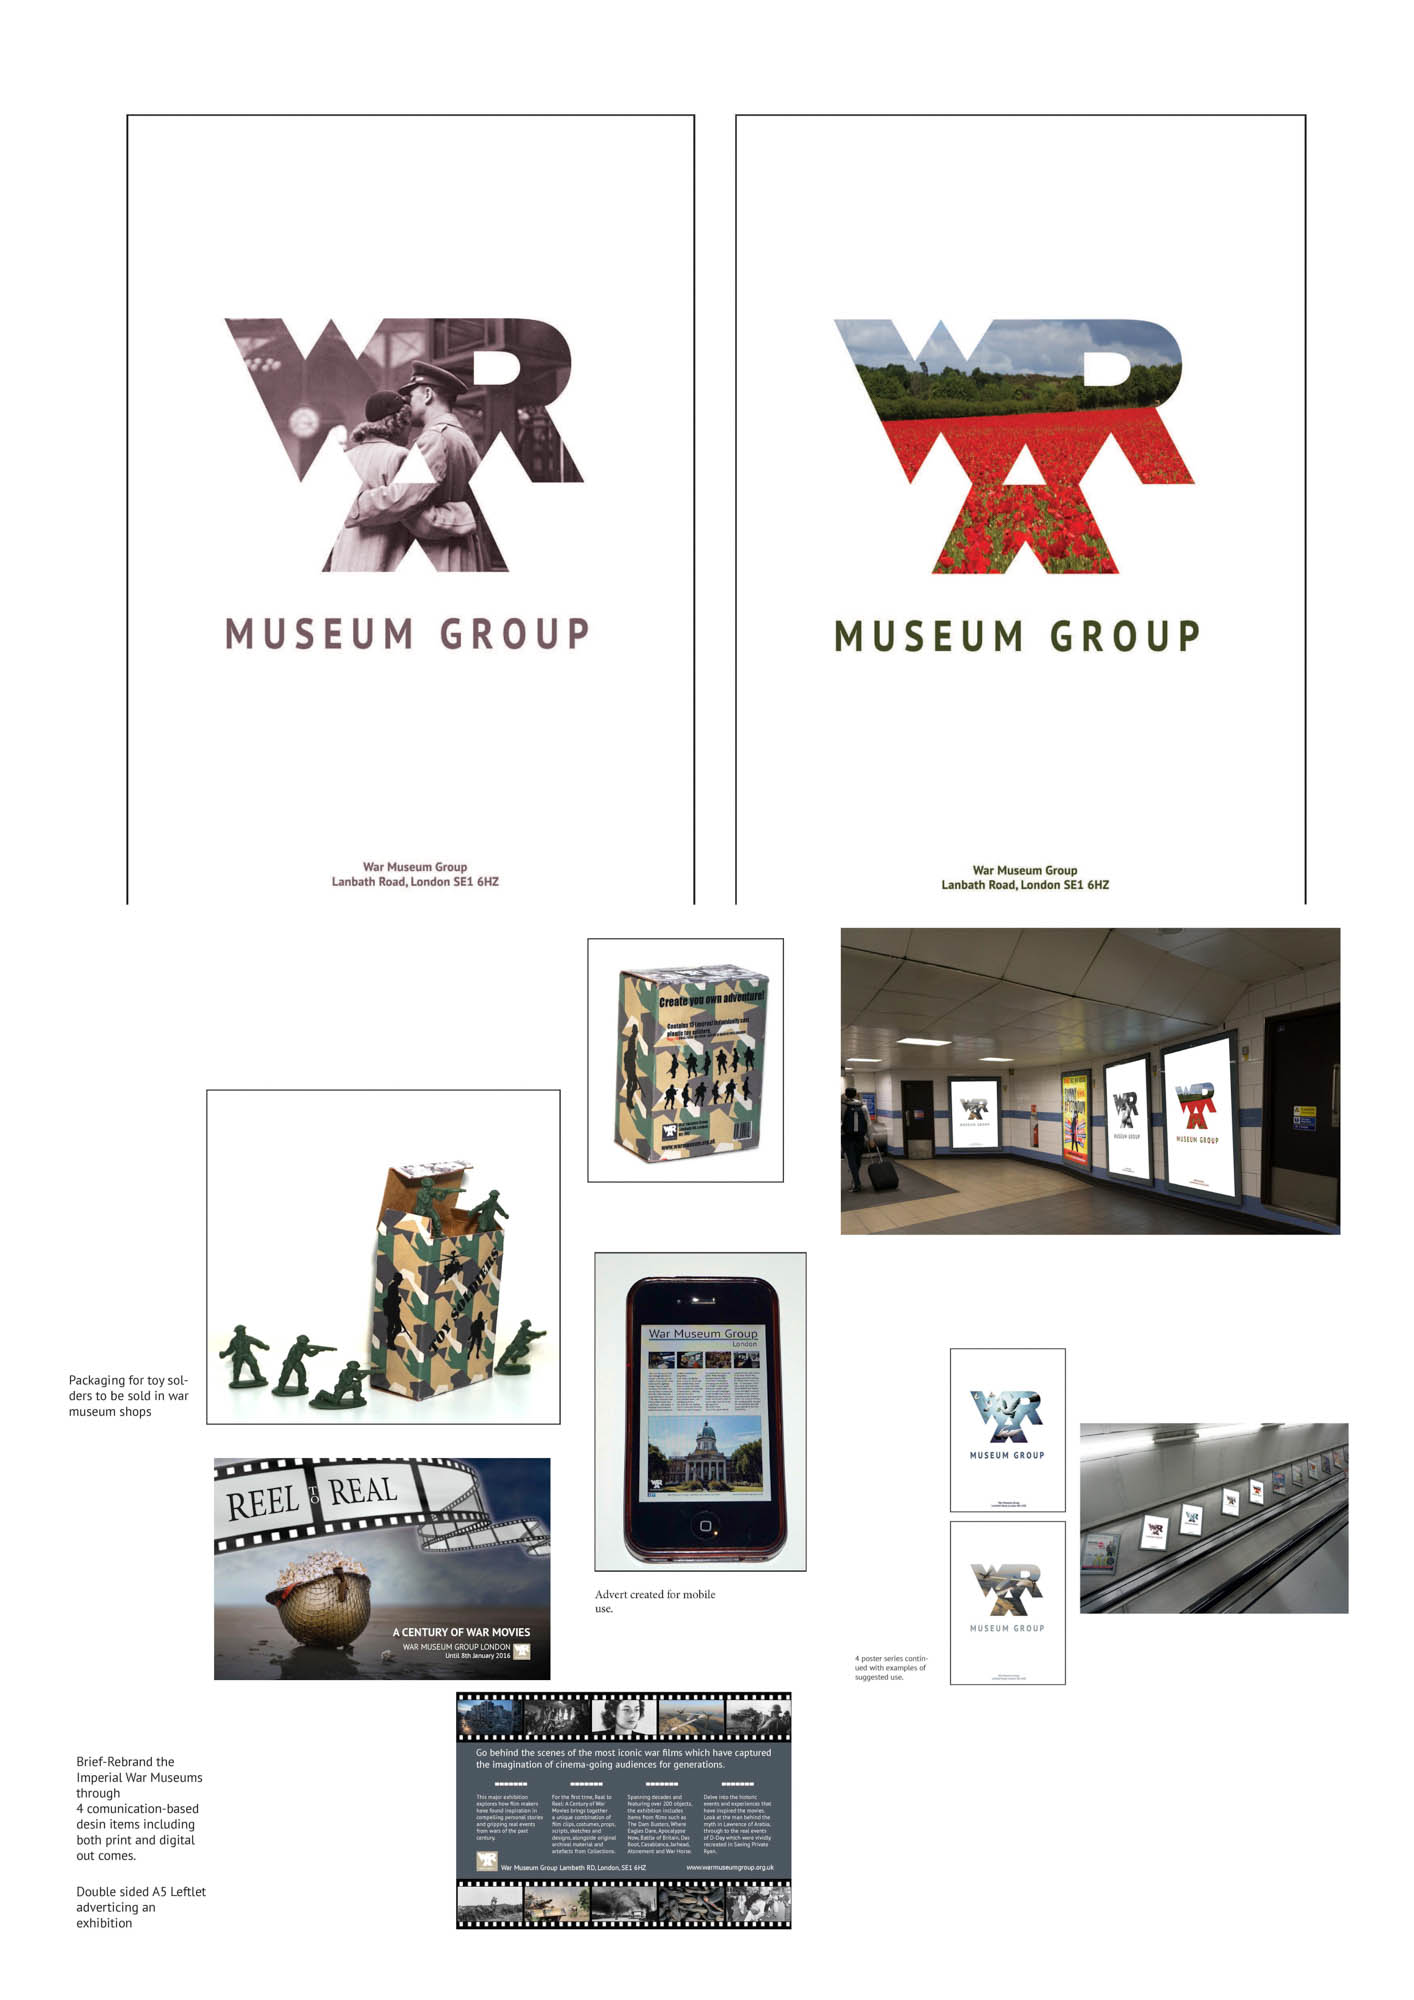 GDES-NIKKI-MASSOS-WAR-MUSEUM-BRIEF